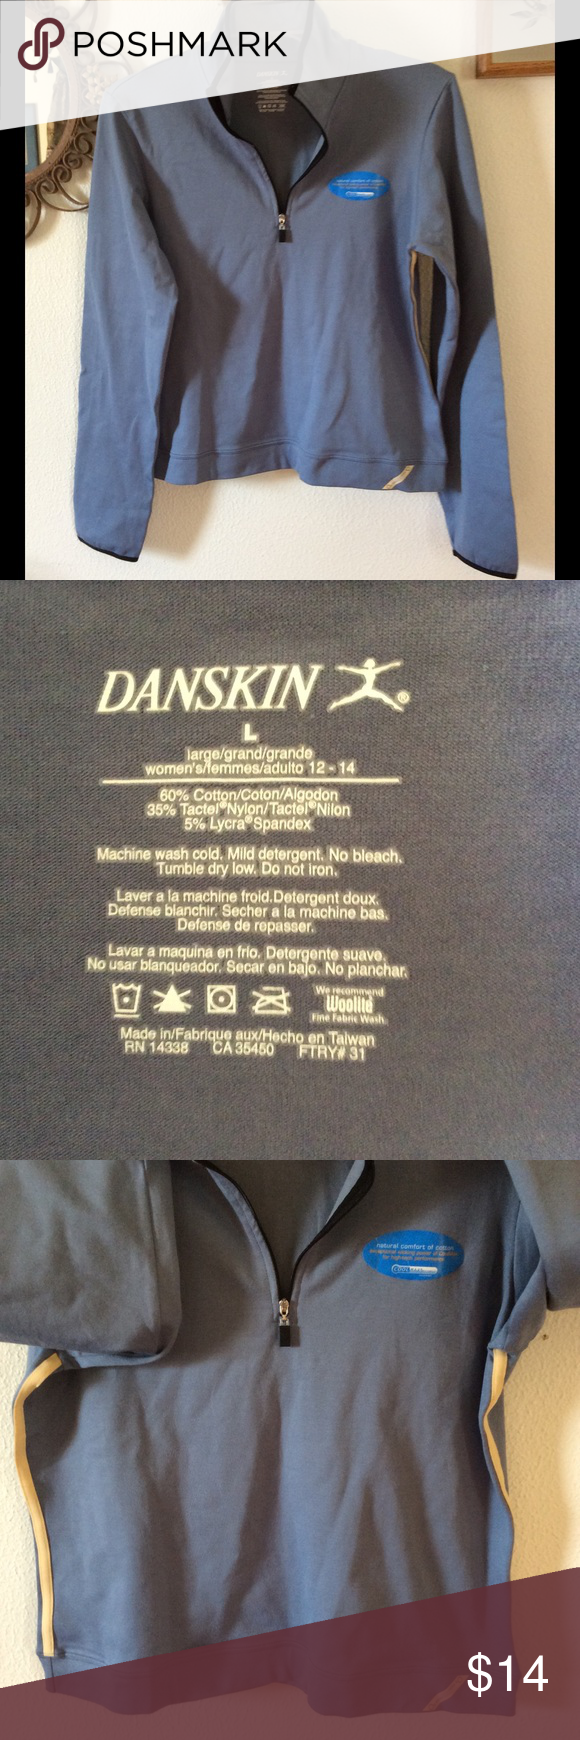 NWOT DANSKIN WORKOUT/JOGGING JACKET. NWOT DANSKIN WORKOUT/JOGGING JACKET.  HAS NEVER BEEN WORN, STILL HAS REMOVABLE TAG ON FRONT AT SHOULDER. This is a great warmup workout jacket. Has stripes on side. First picture is best color picture. Size large. Danskin Jackets & Coats Utility Jackets